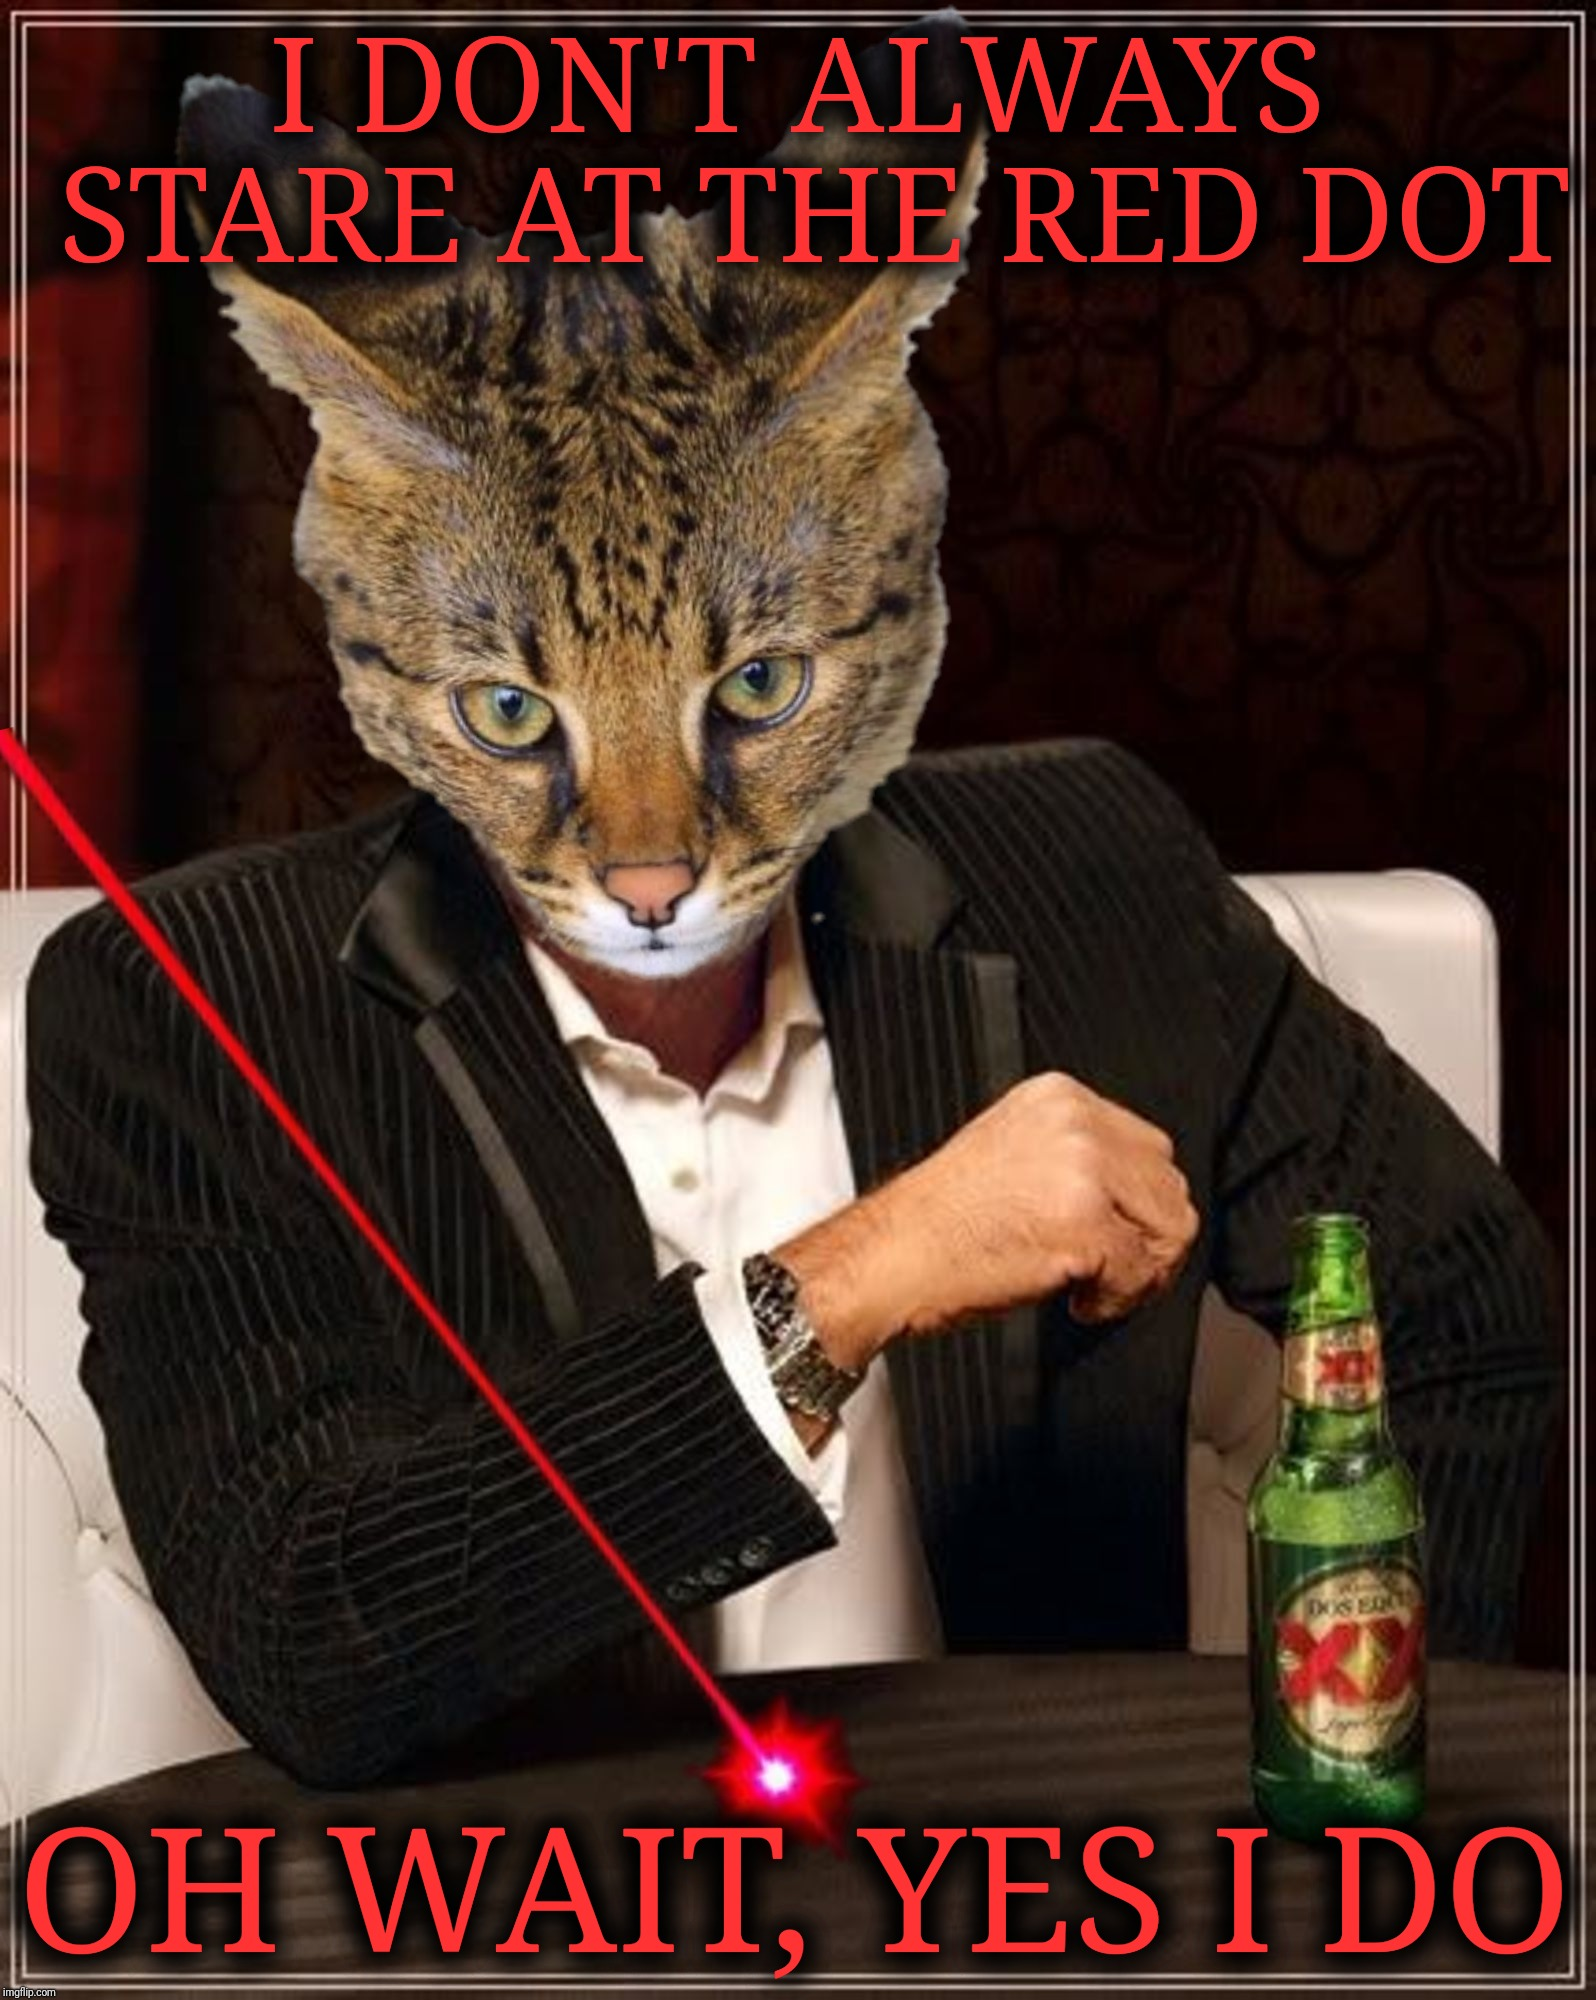 Keep your eye on the prize | I DON'T ALWAYS STARE AT THE RED DOT OH WAIT, YES I DO | image tagged in the most interesting man in the world,the most interesting cat in the world,red dot,laser,infernokid-sandstorm,new template | made w/ Imgflip meme maker